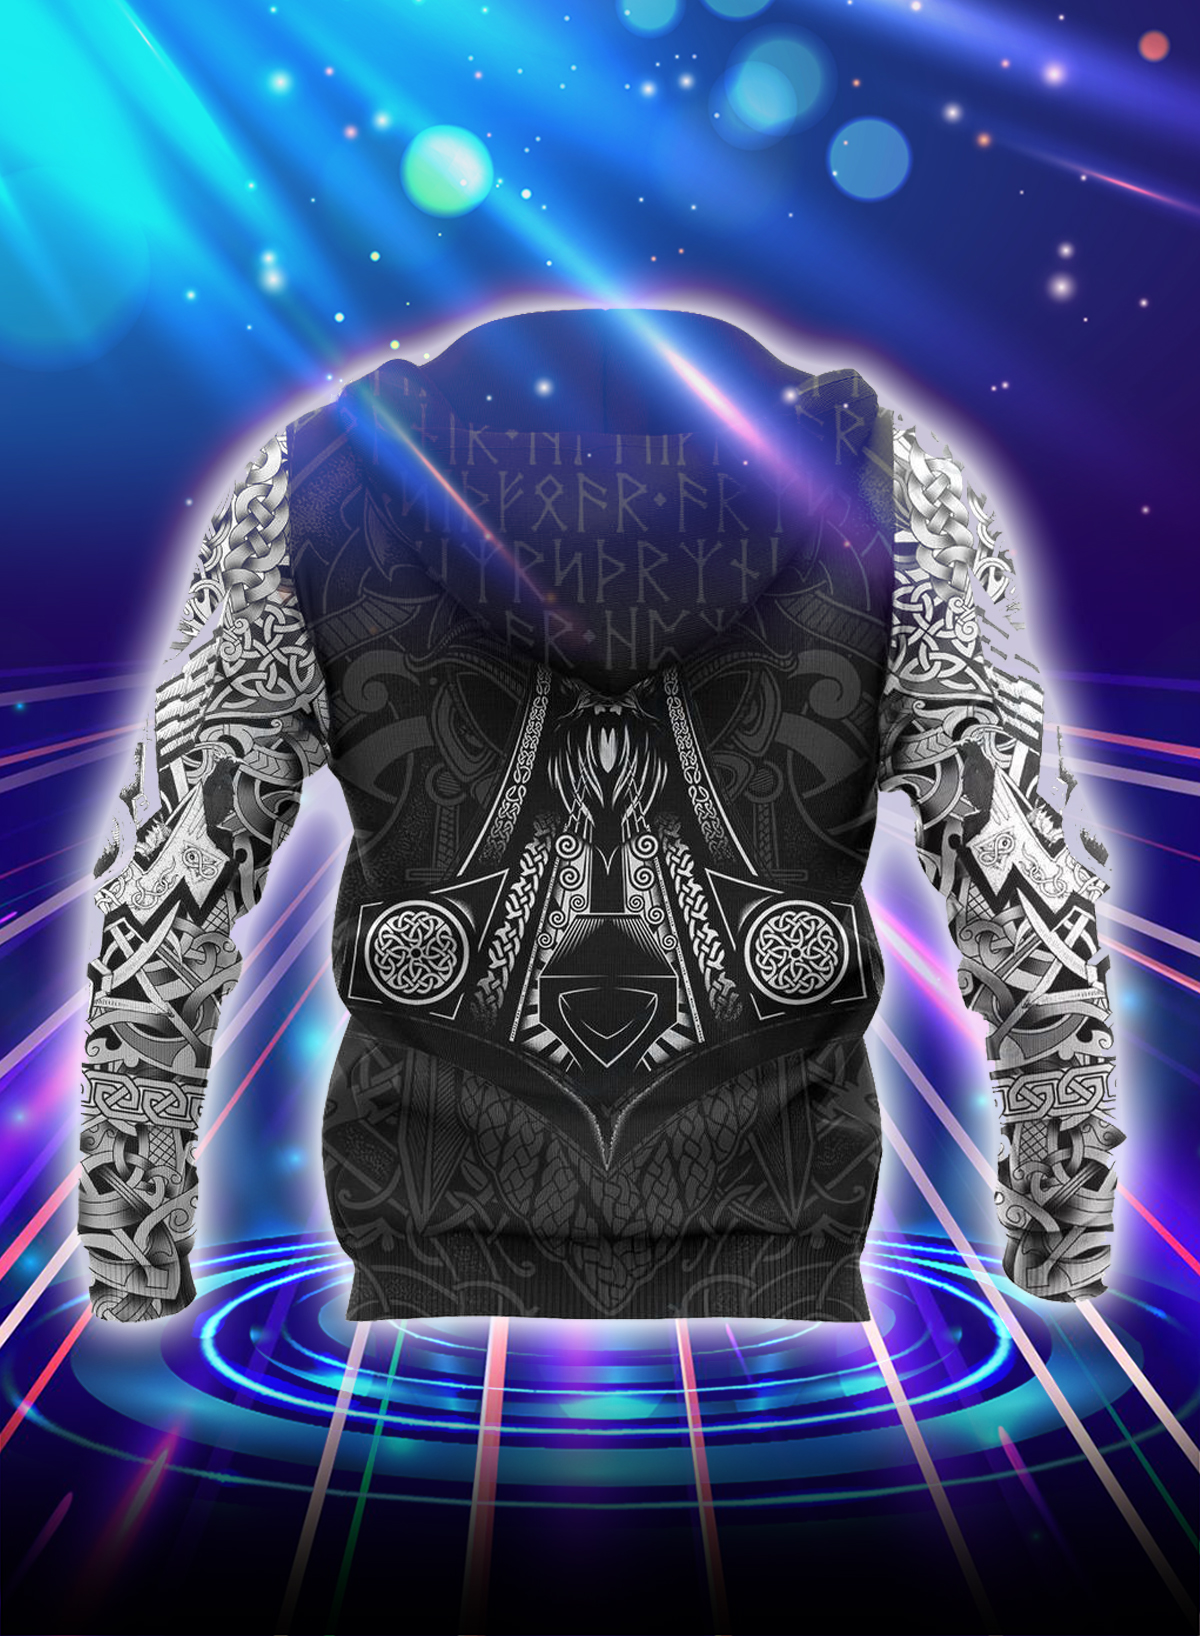 Vikings odin tattoo style all over printed hoodie - Back